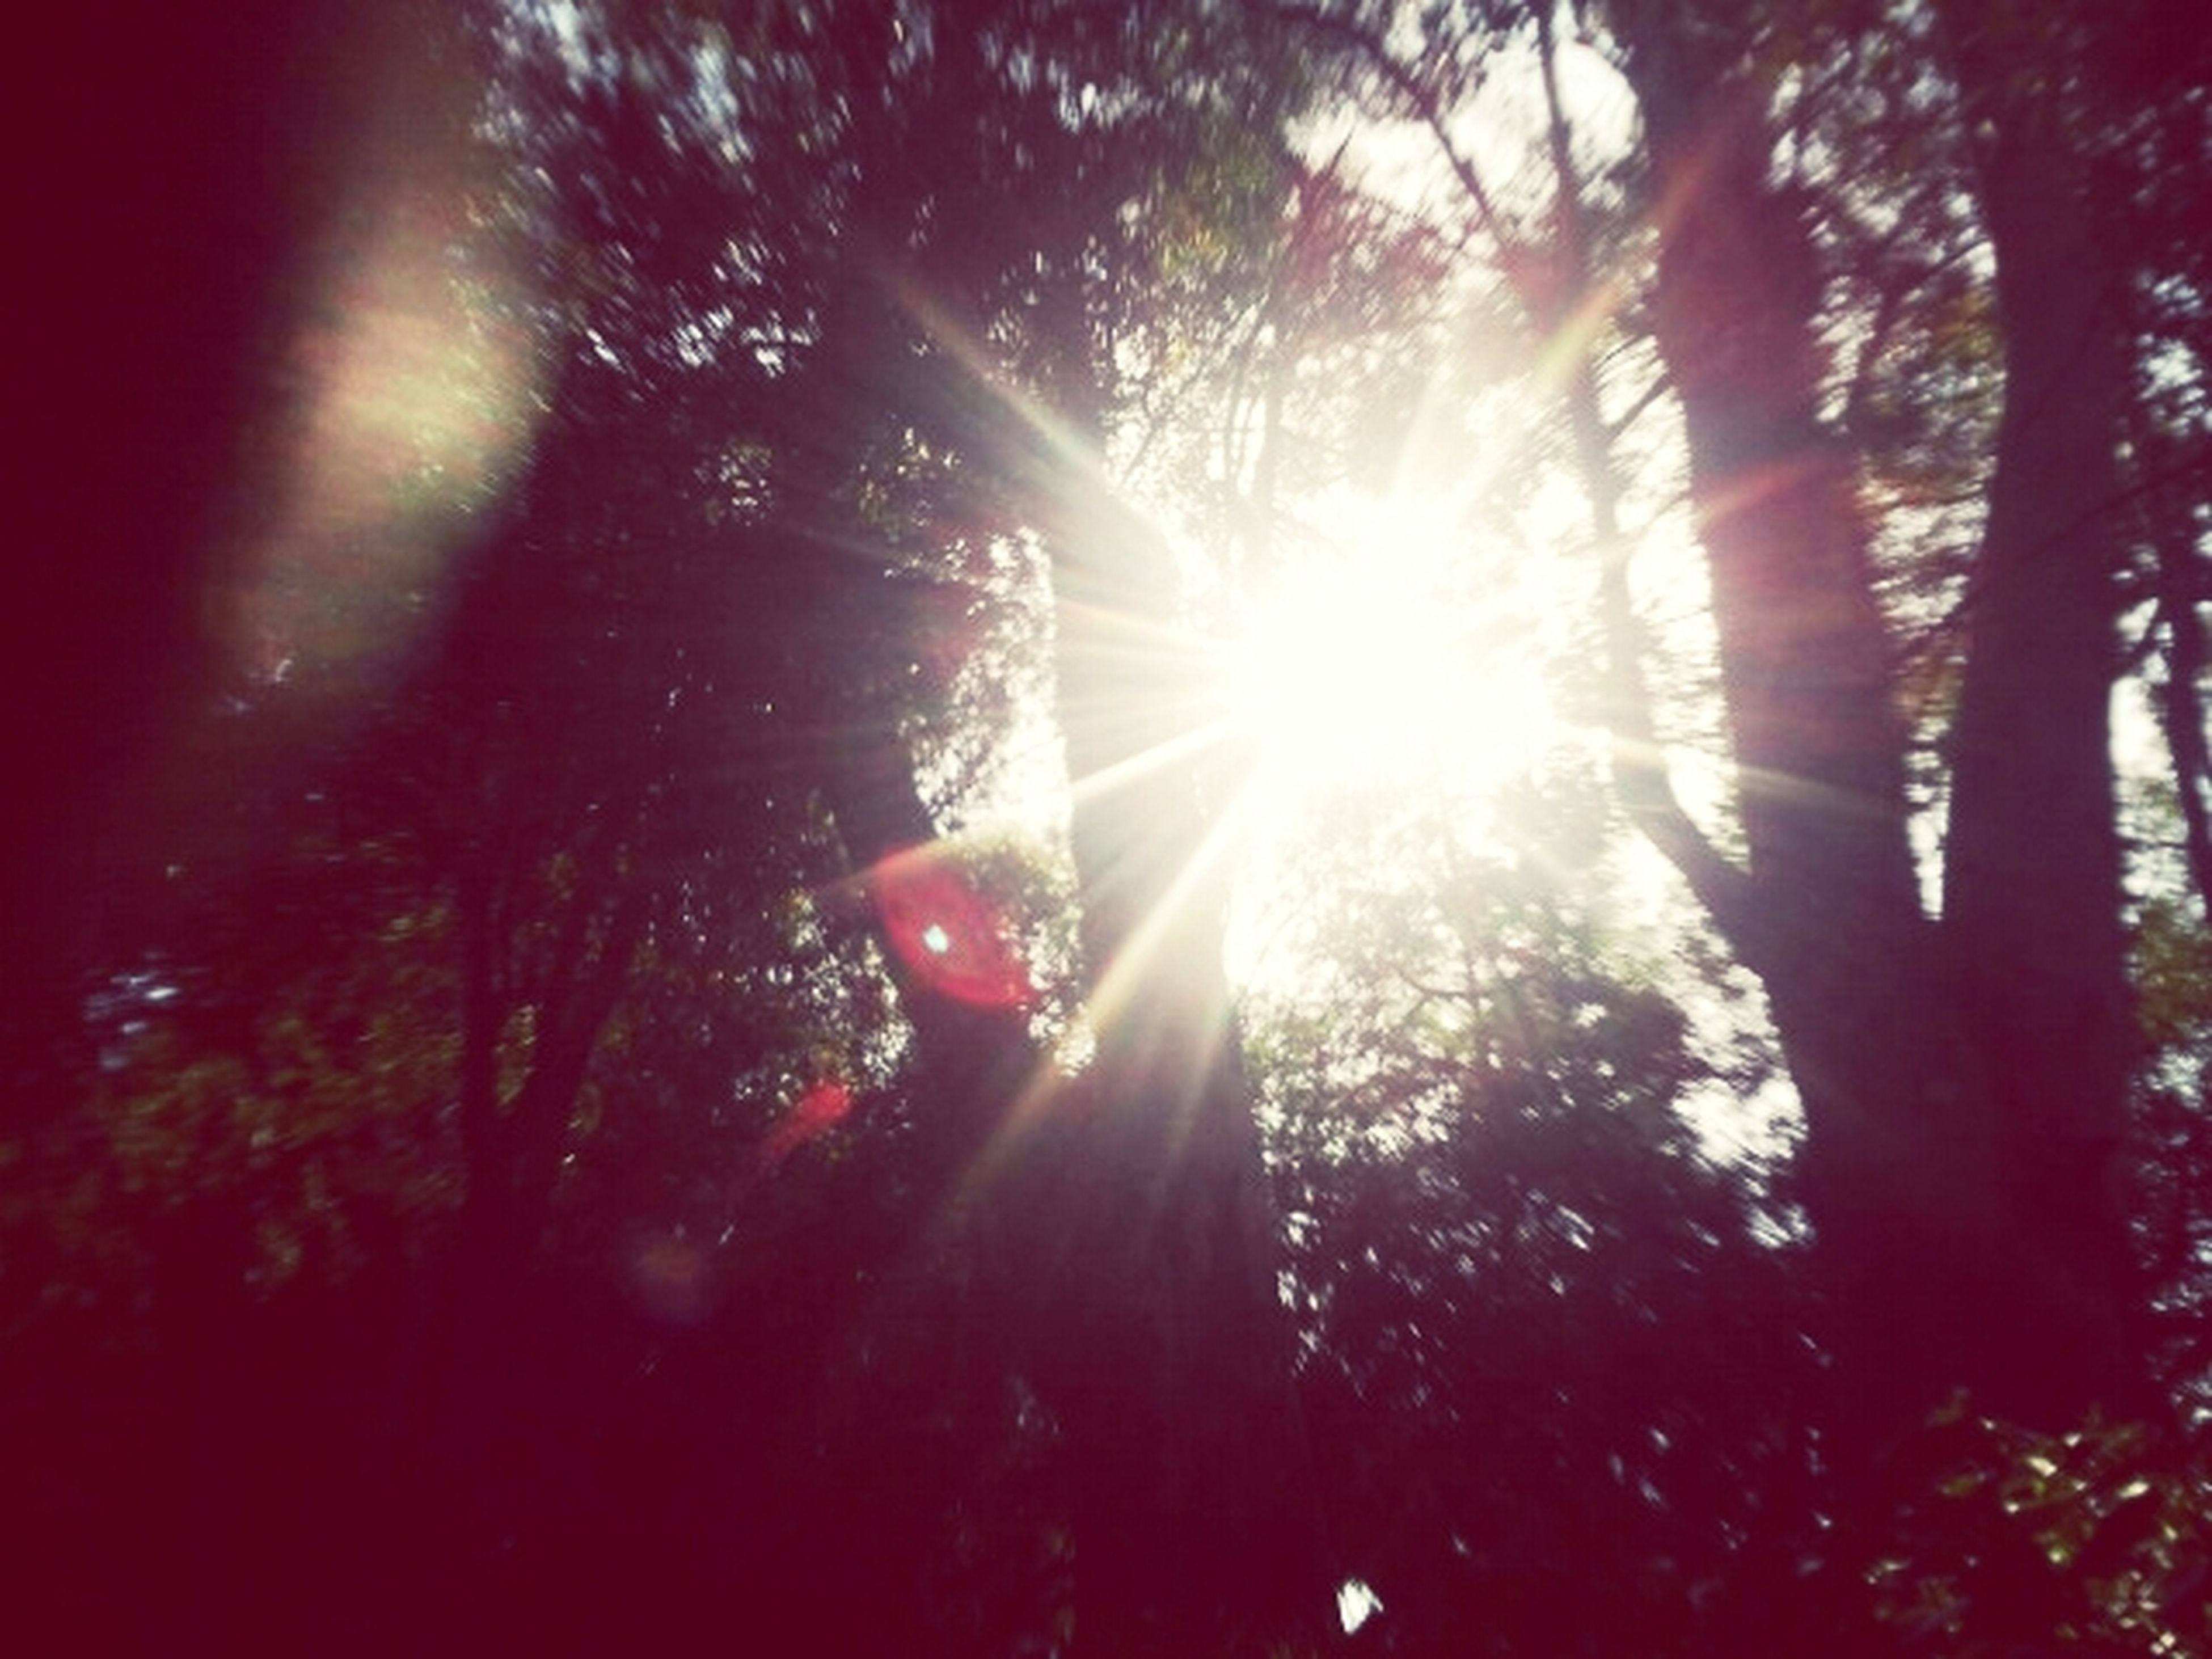 sun, sunbeam, tree, lens flare, sunlight, low angle view, growth, bright, tranquility, back lit, nature, beauty in nature, silhouette, streaming, sunny, branch, sky, tranquil scene, scenics, shiny